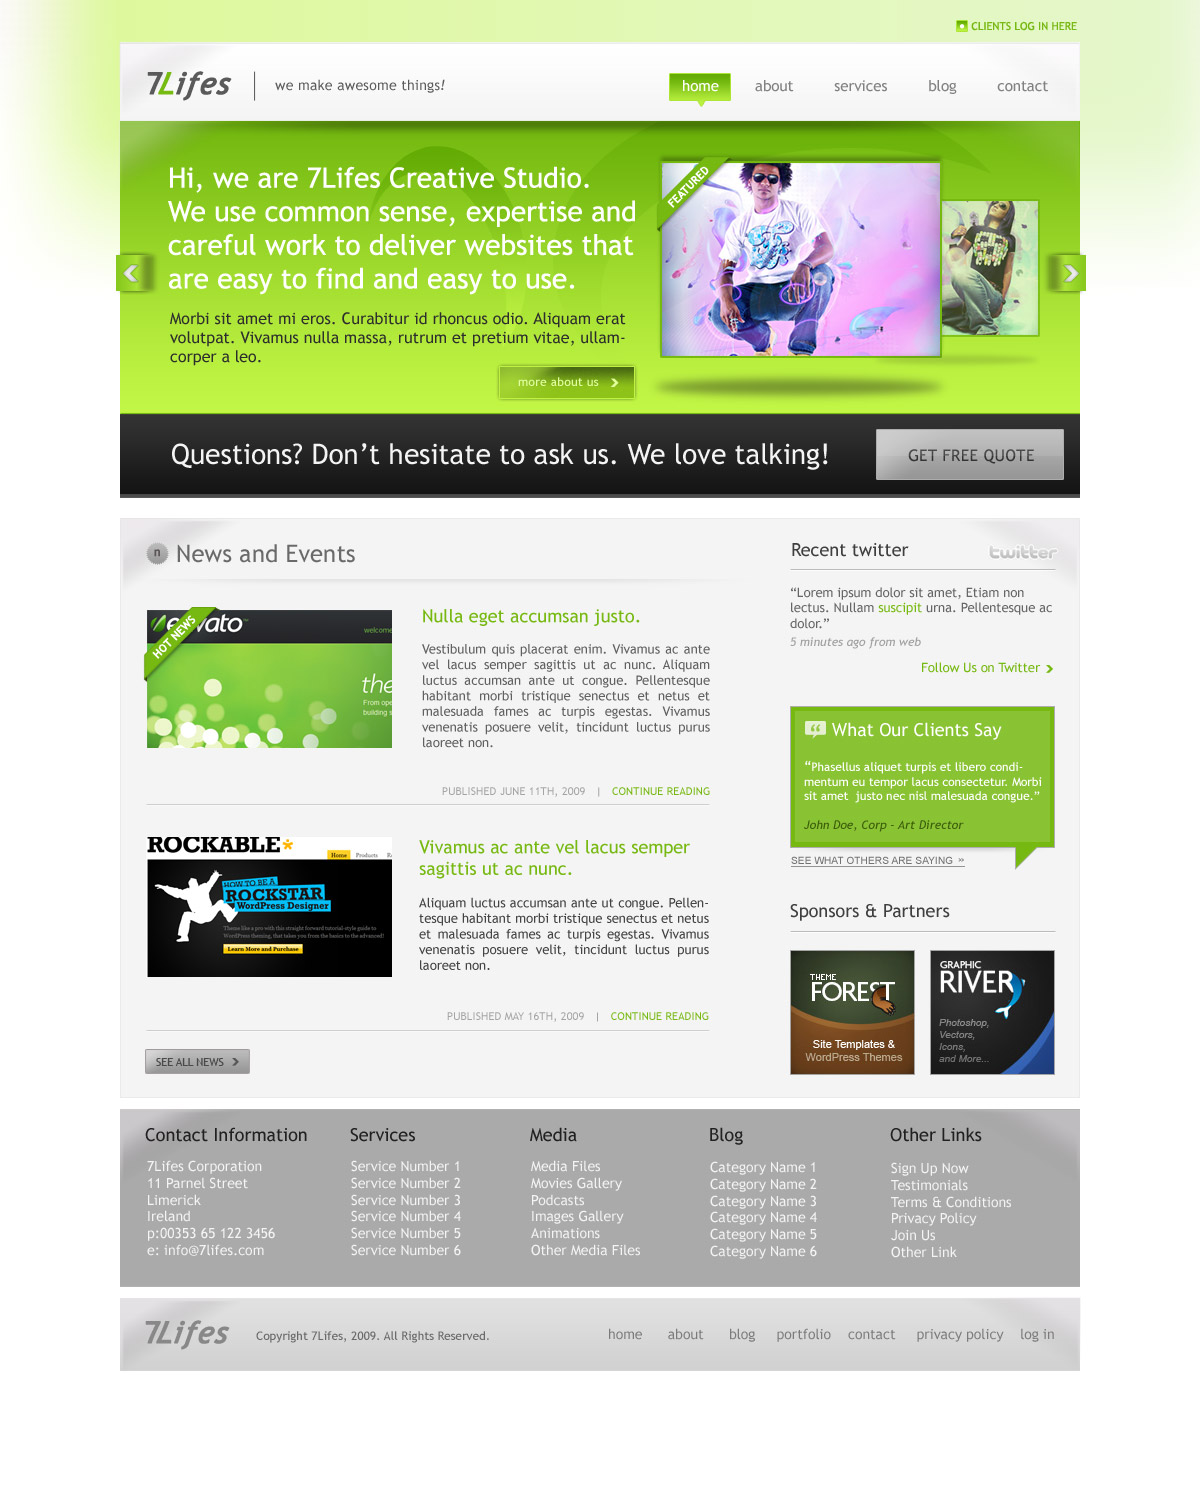 7Lifes - Modern and Professional Psd. Template - Homepage - Color Green - Color full baner with company or product prezentation.